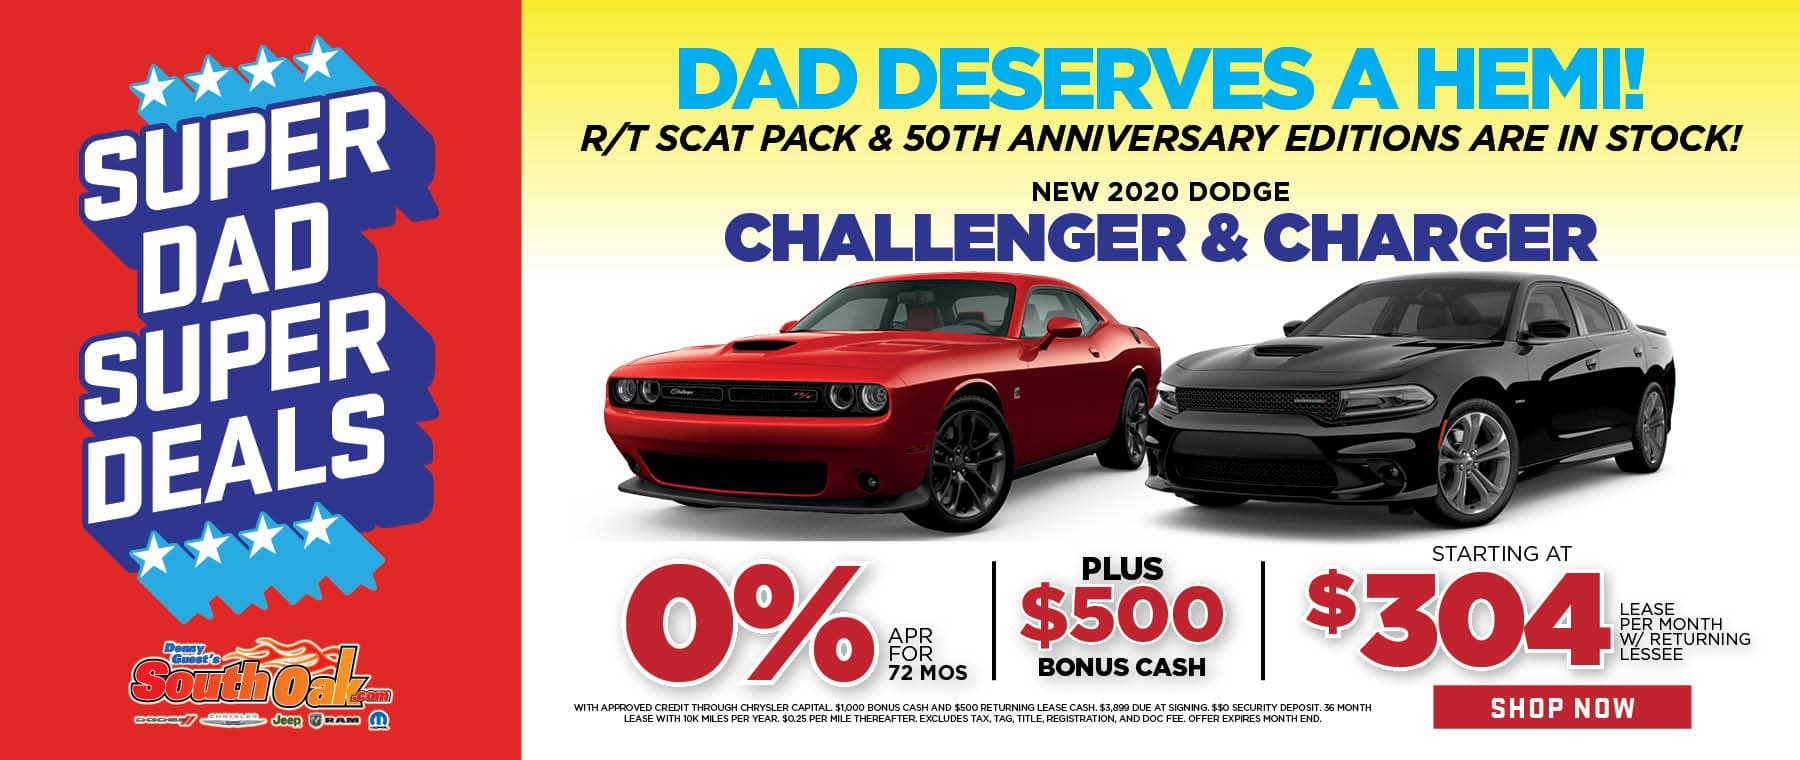 Dodge Father's Day Special